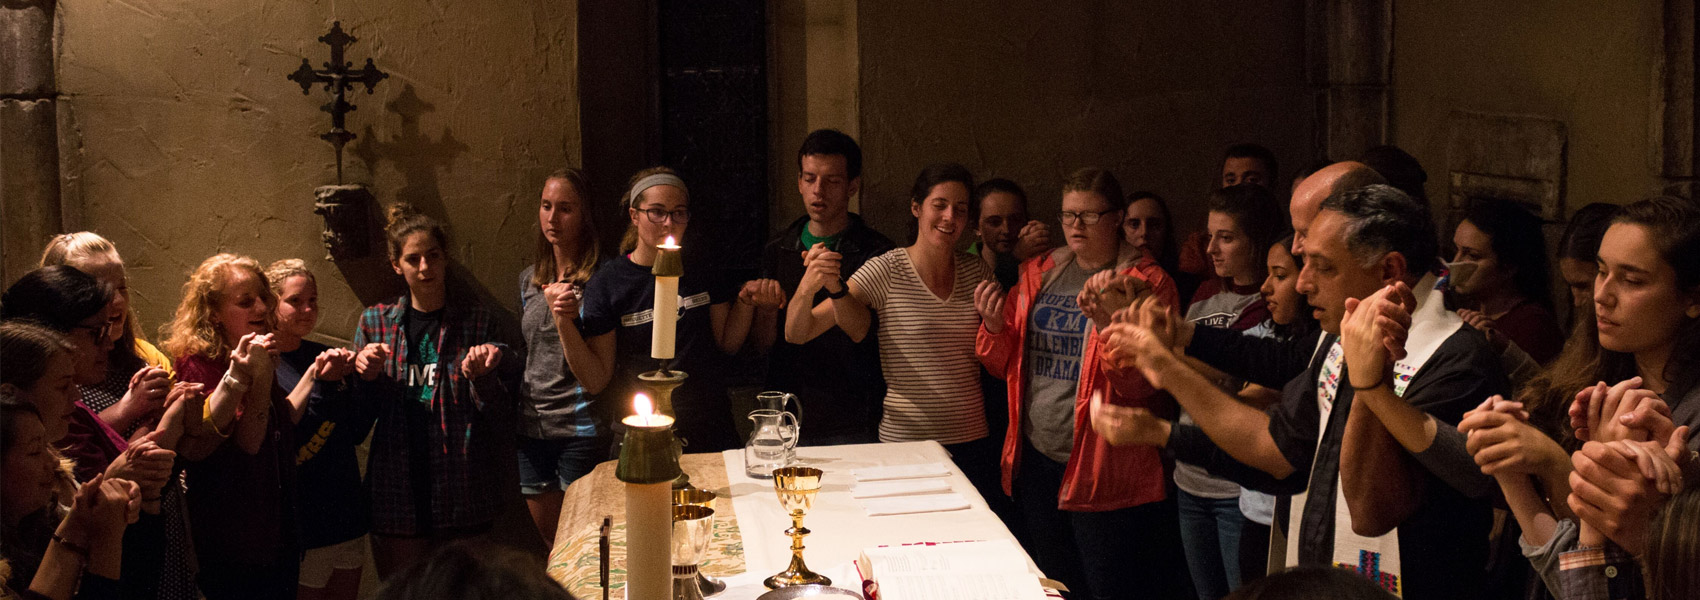 Students participating in Tuesday mass in the St. Joan of Arc Chapel